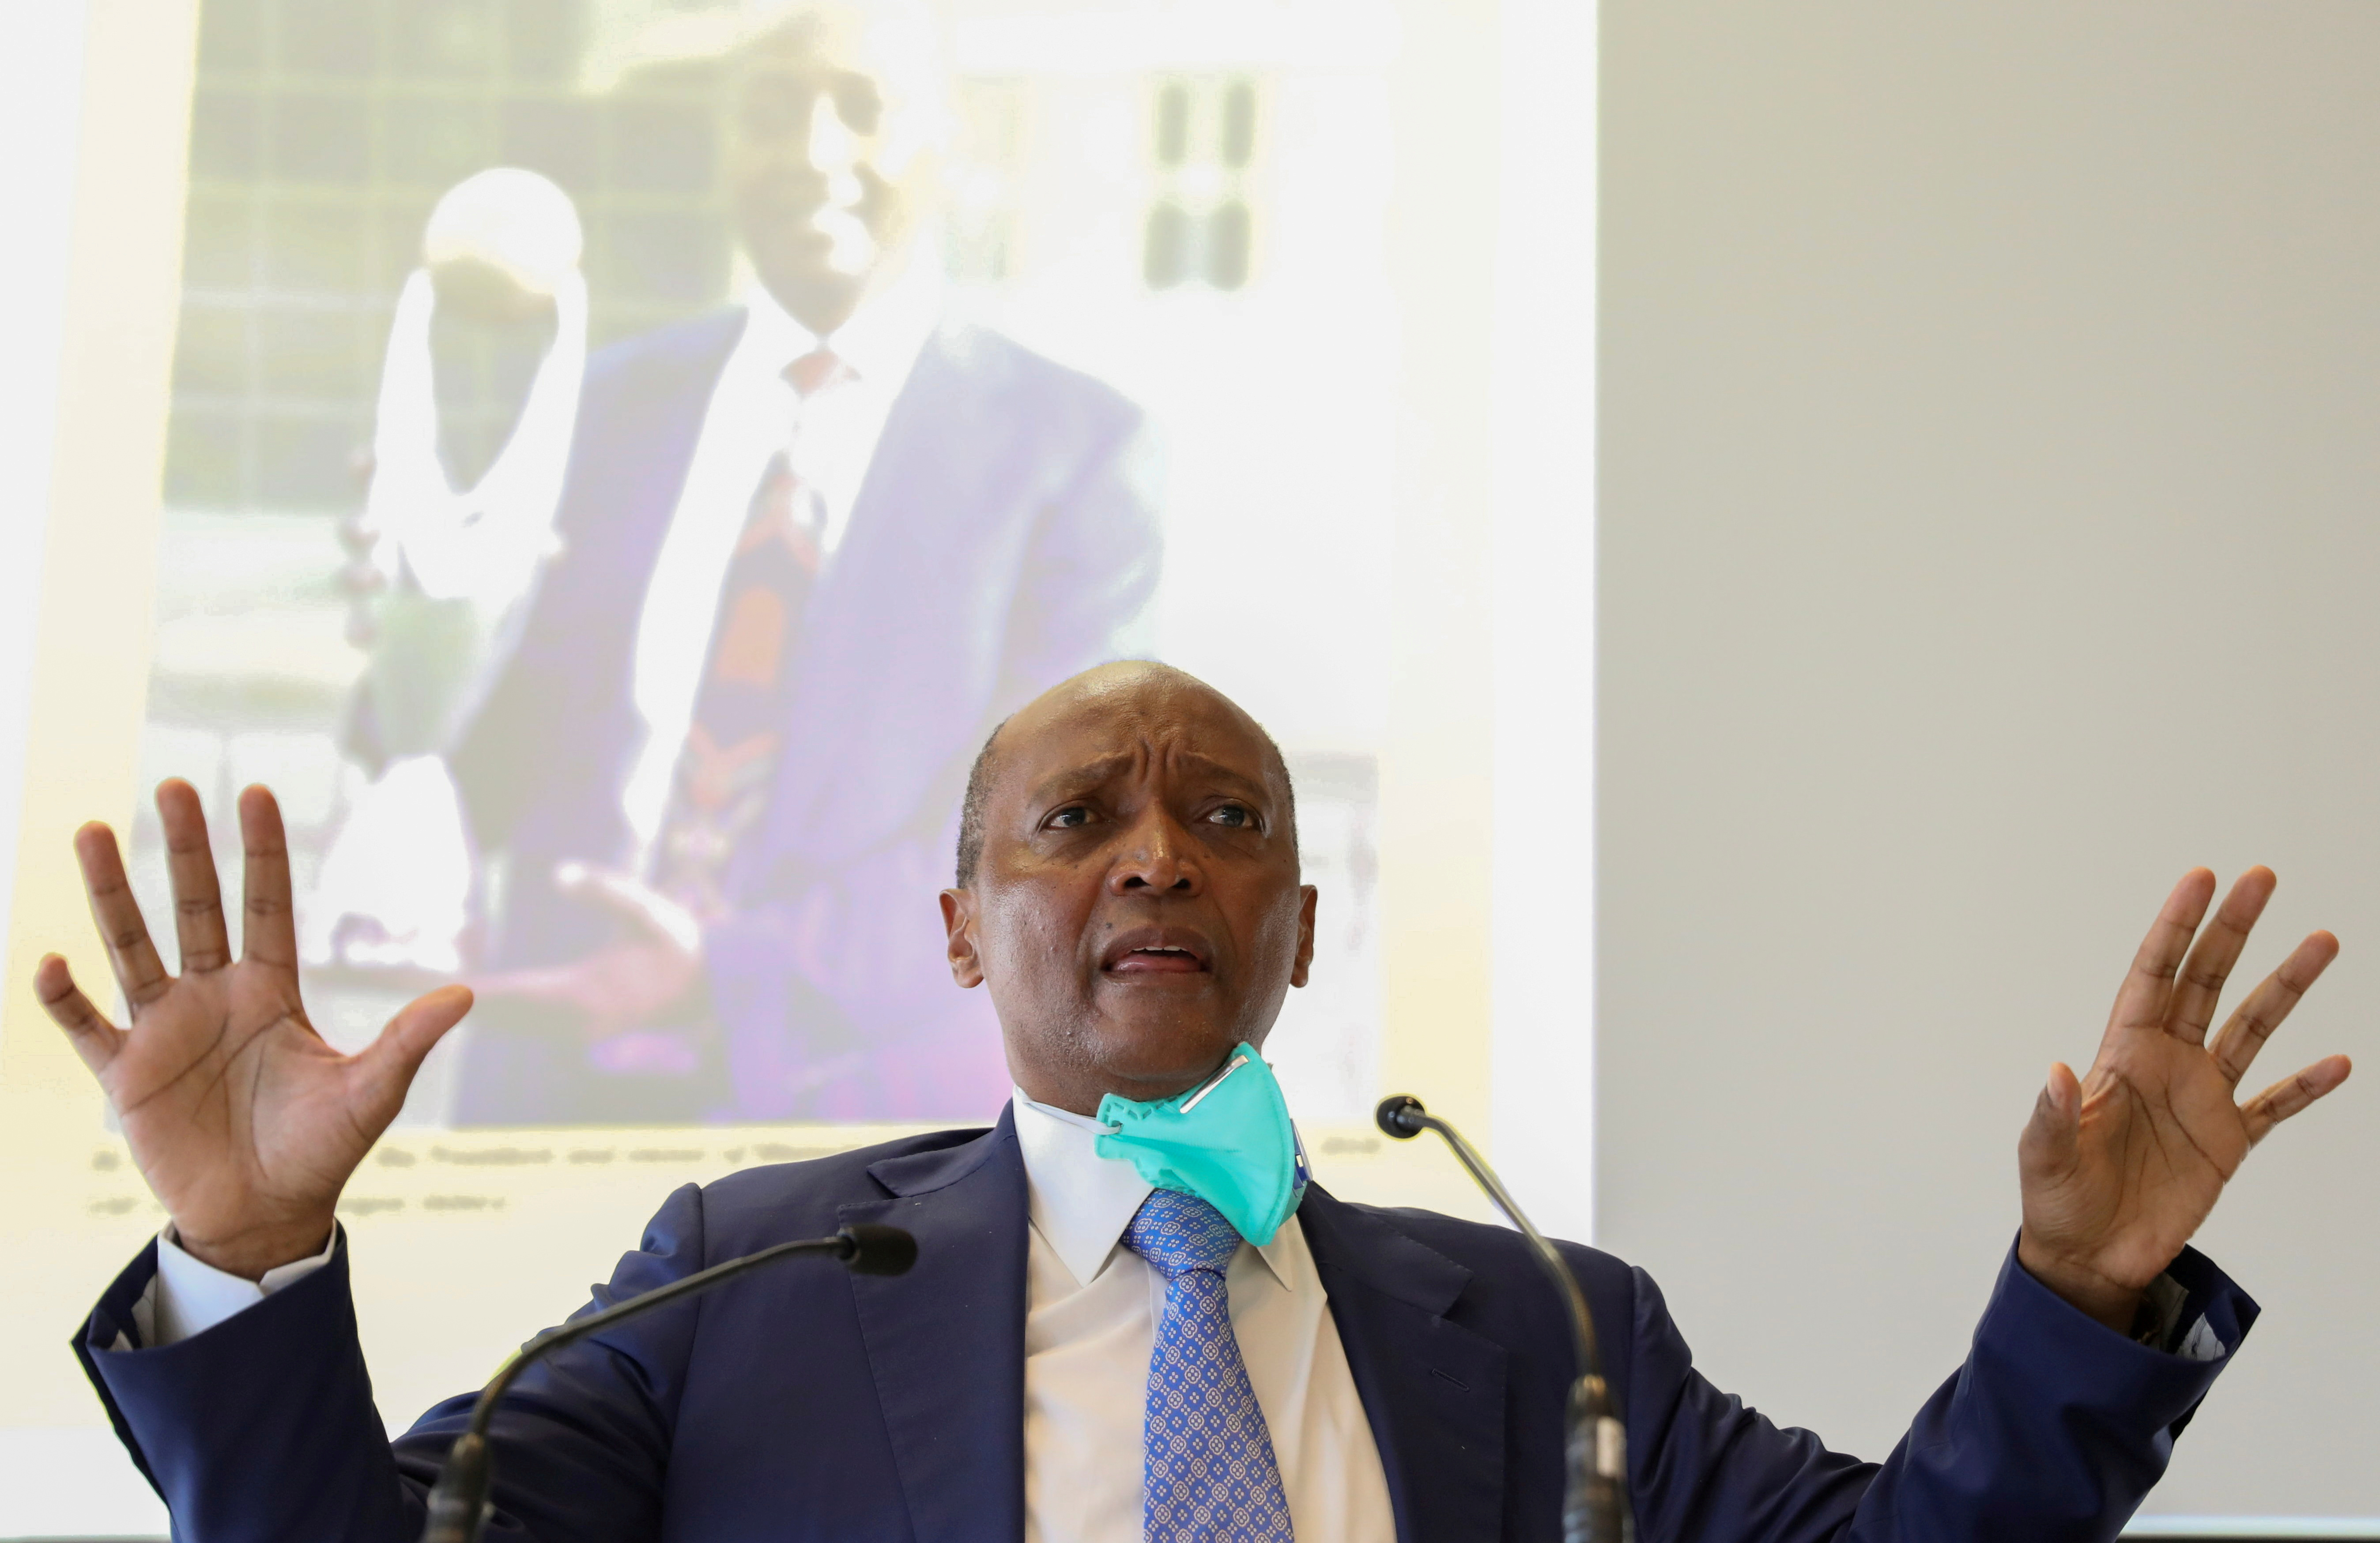 South African billionaire Patrice Motsepe gestures during a media briefing as he delivers his CAF Presidency strategy ahead of the upcoming CAF Presidential elections, in Sandton, South Africa, February 25, 2021. REUTERS/ Siphiwe Sibeko